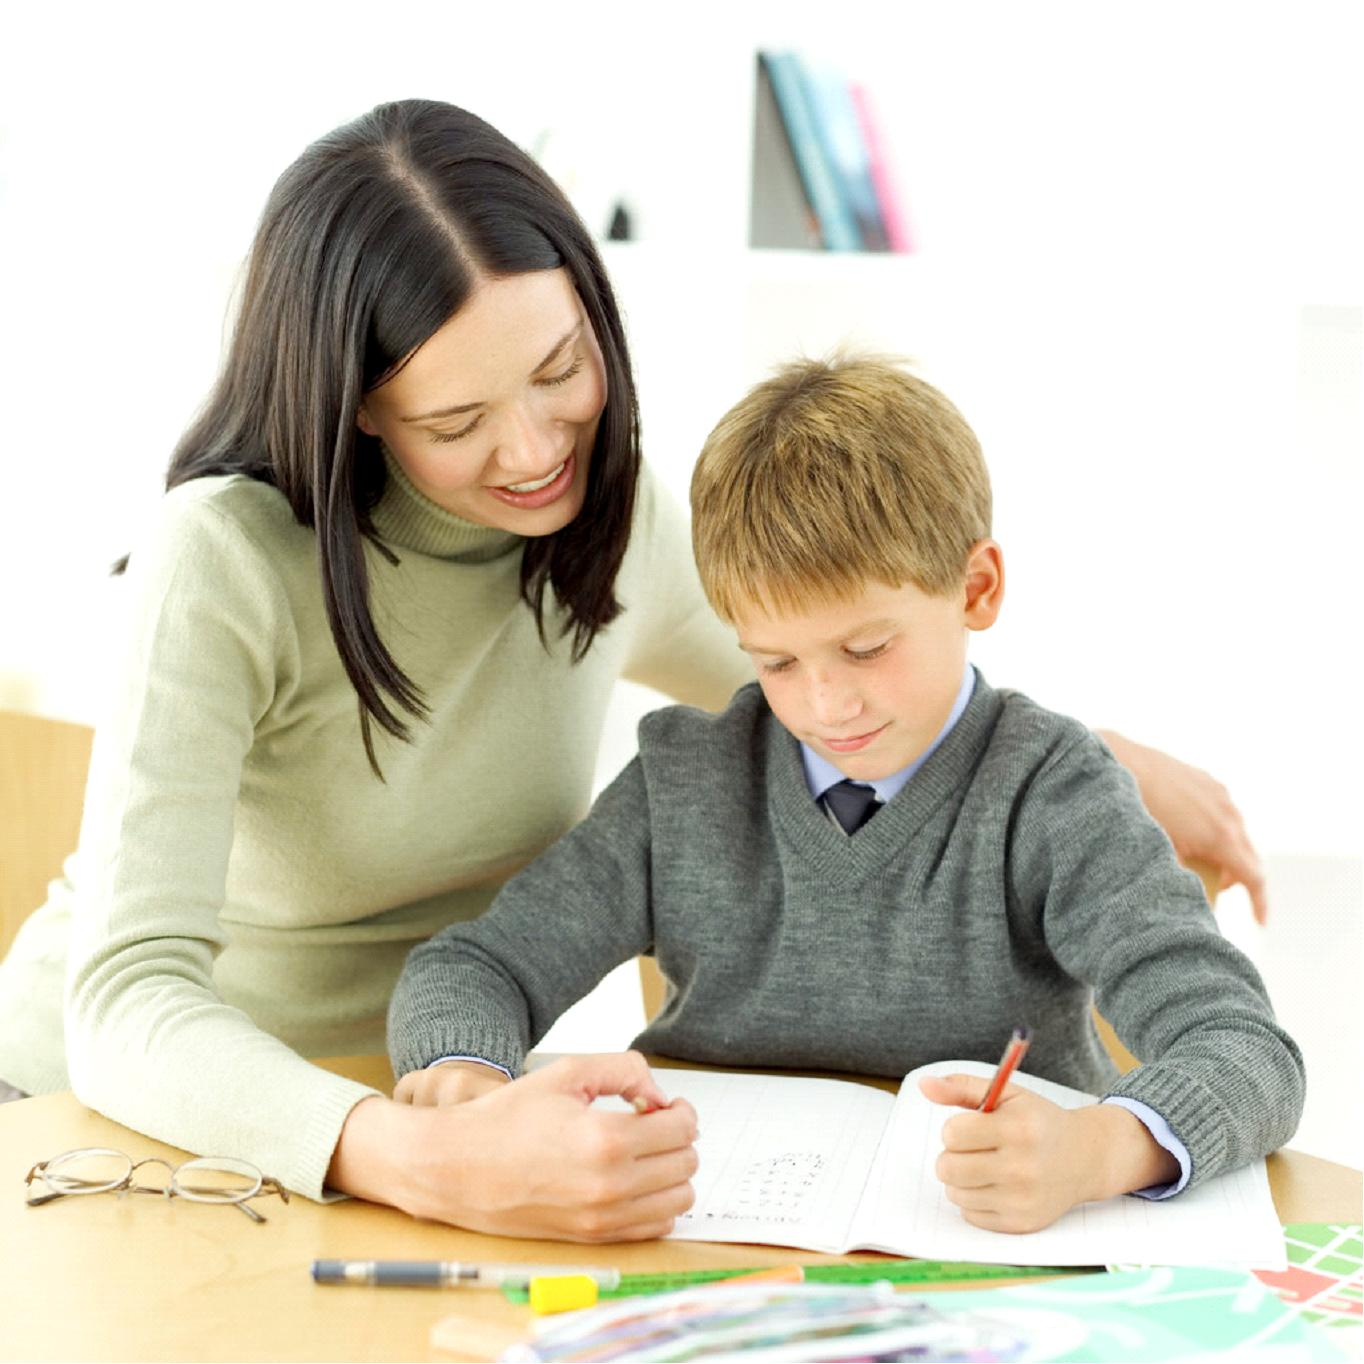 teacher and student - learn more